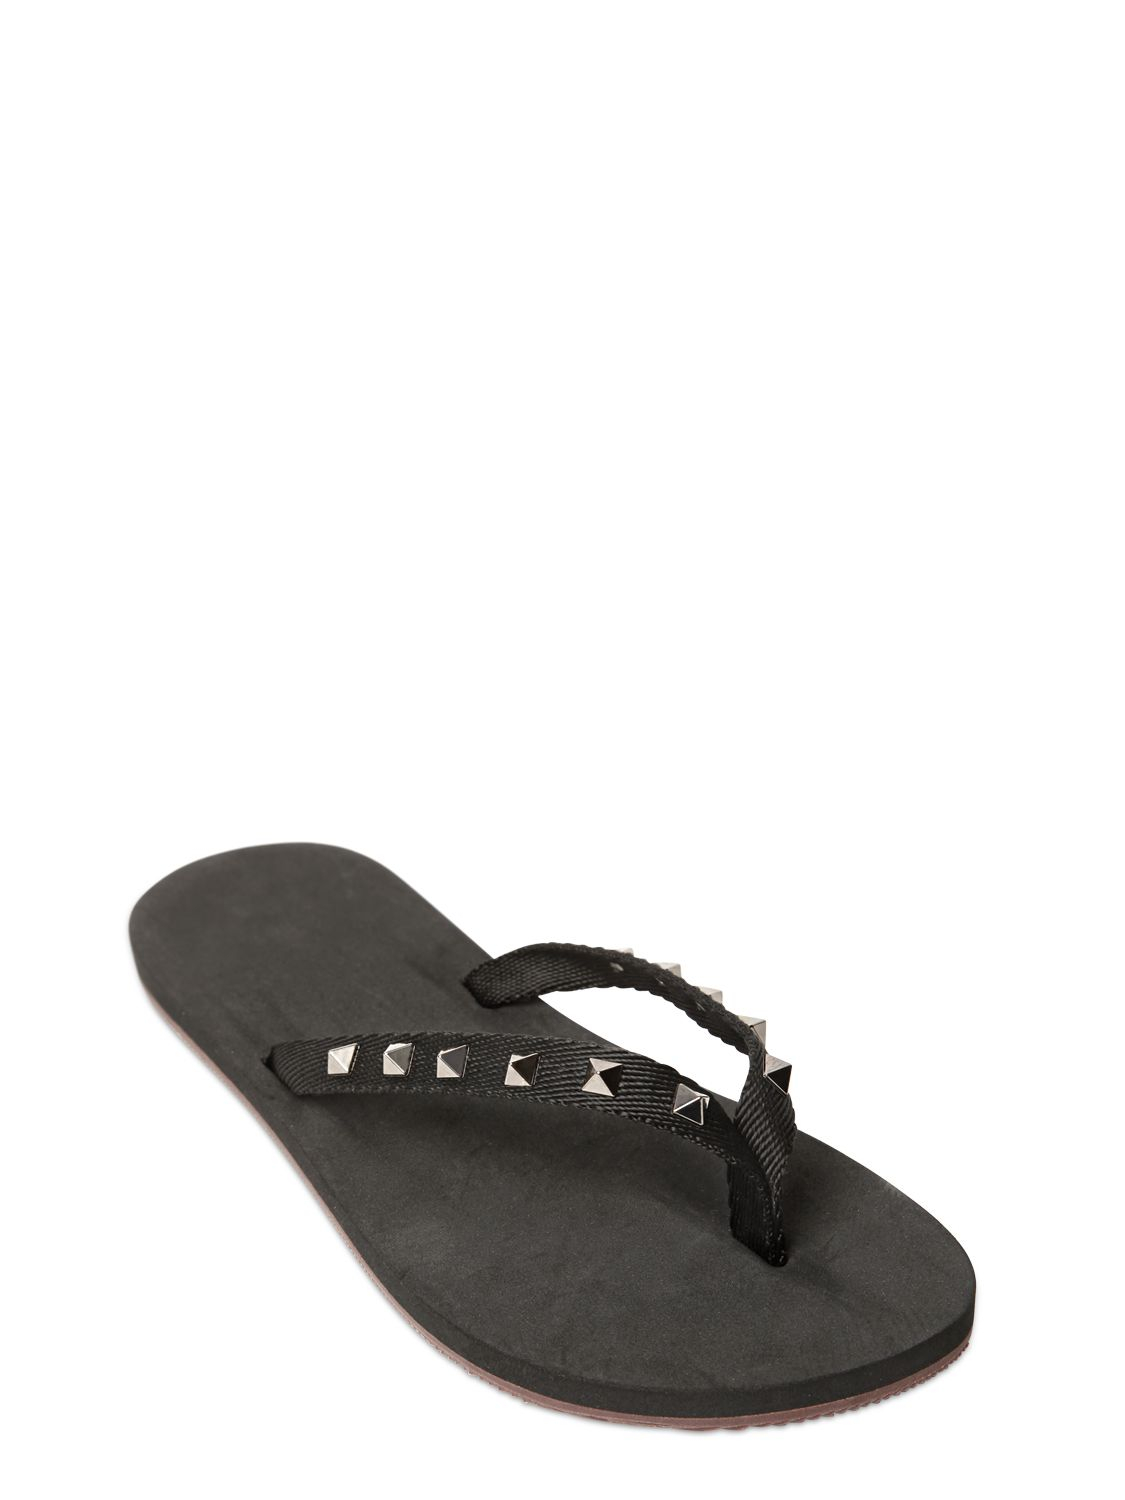 Valentino Studded Rubber Flip Flops In Black - Lyst-1750